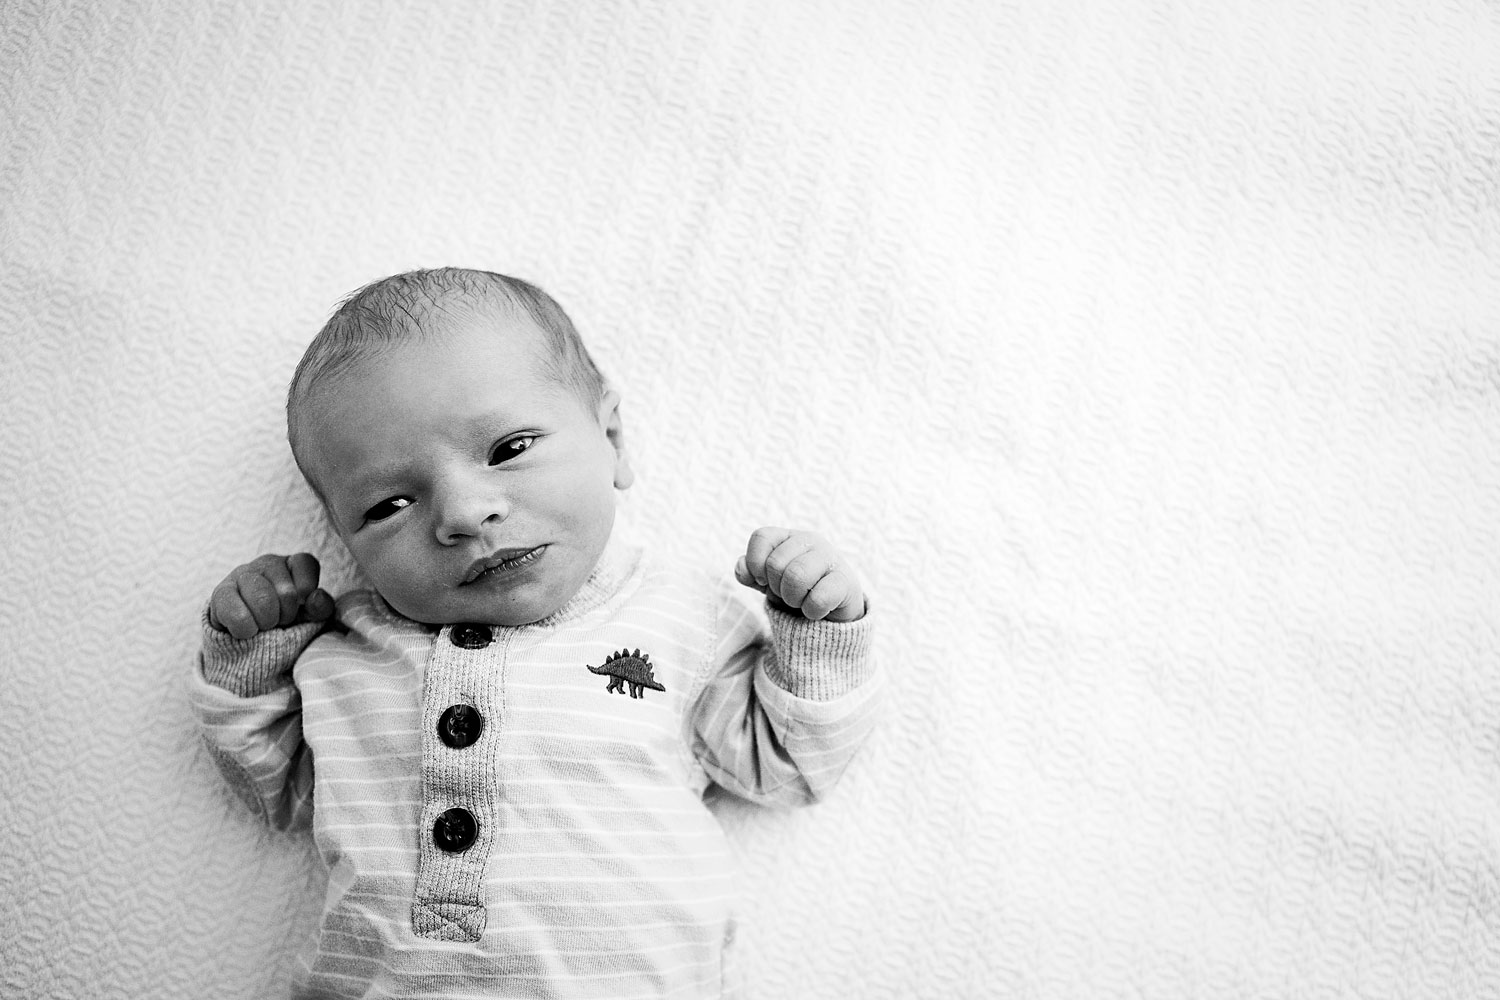 Newborn Baby Boy Amy Wright Photography Roseville Newborn Photographer